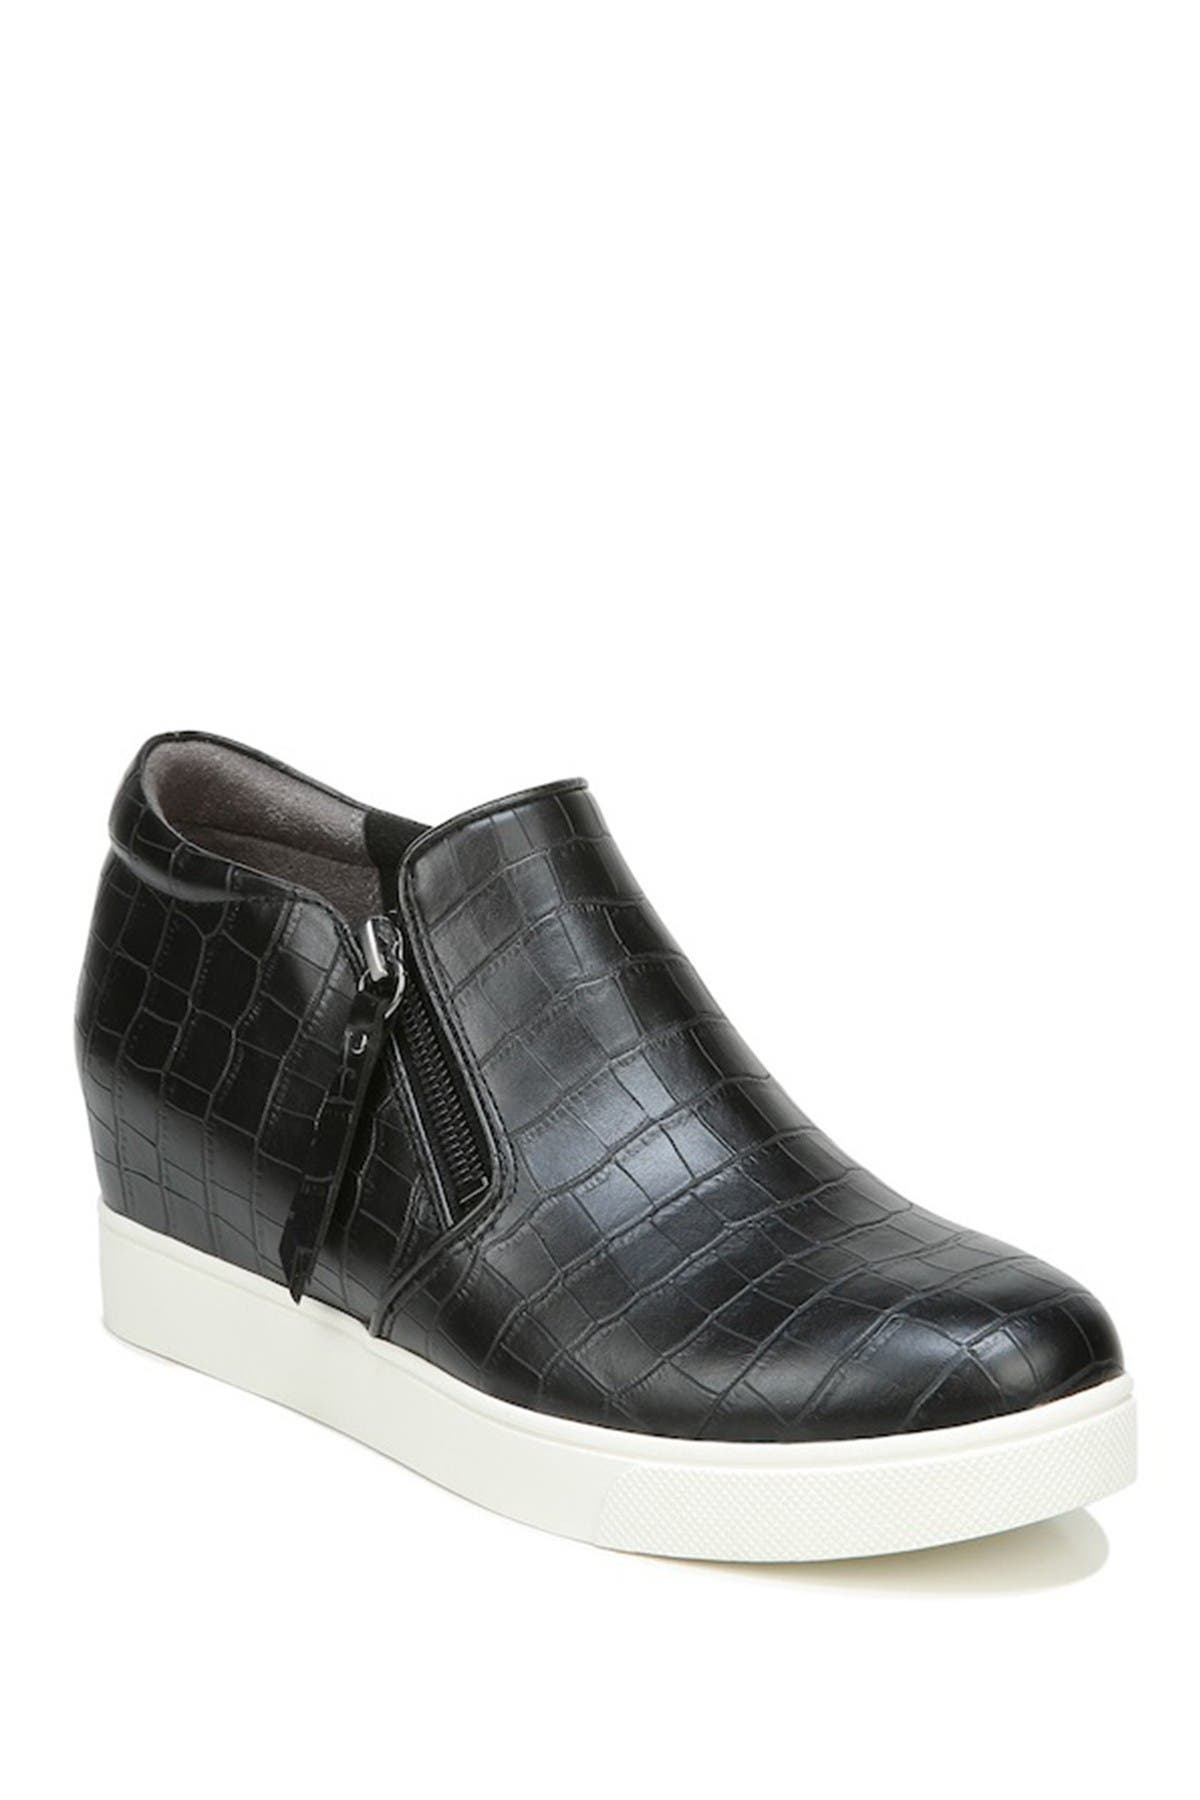 Image of Dr. Scholl's It's All Good Croc Embossed Wedge Sneaker